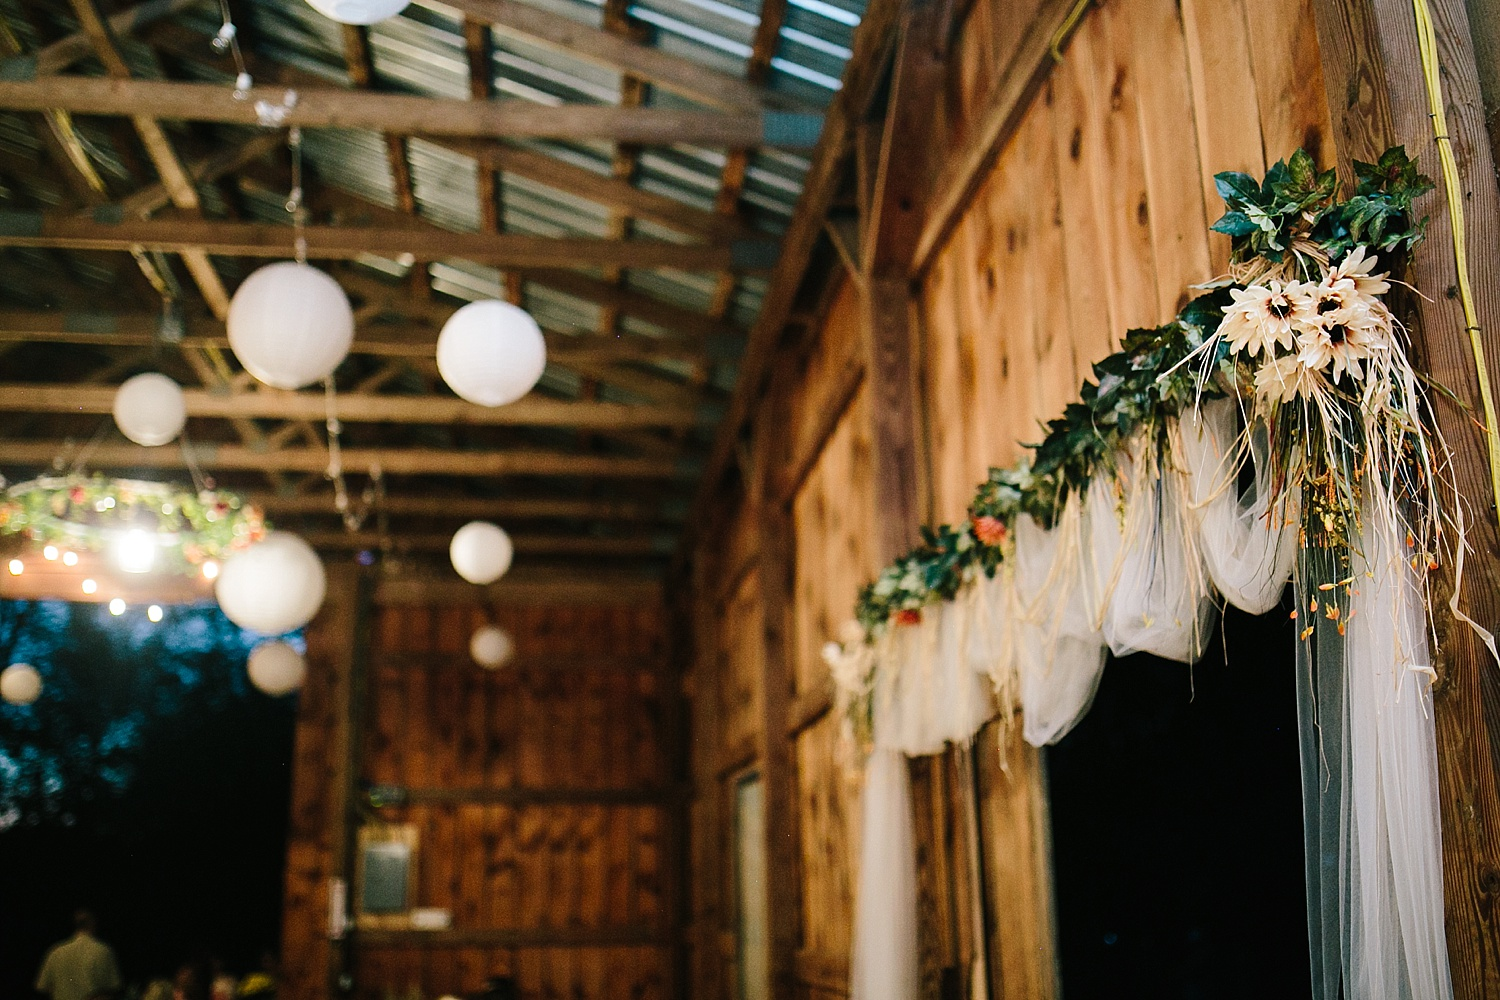 jennyryan_newbeginnings_farmstead_upstatenewyork_wedding_image131.jpg